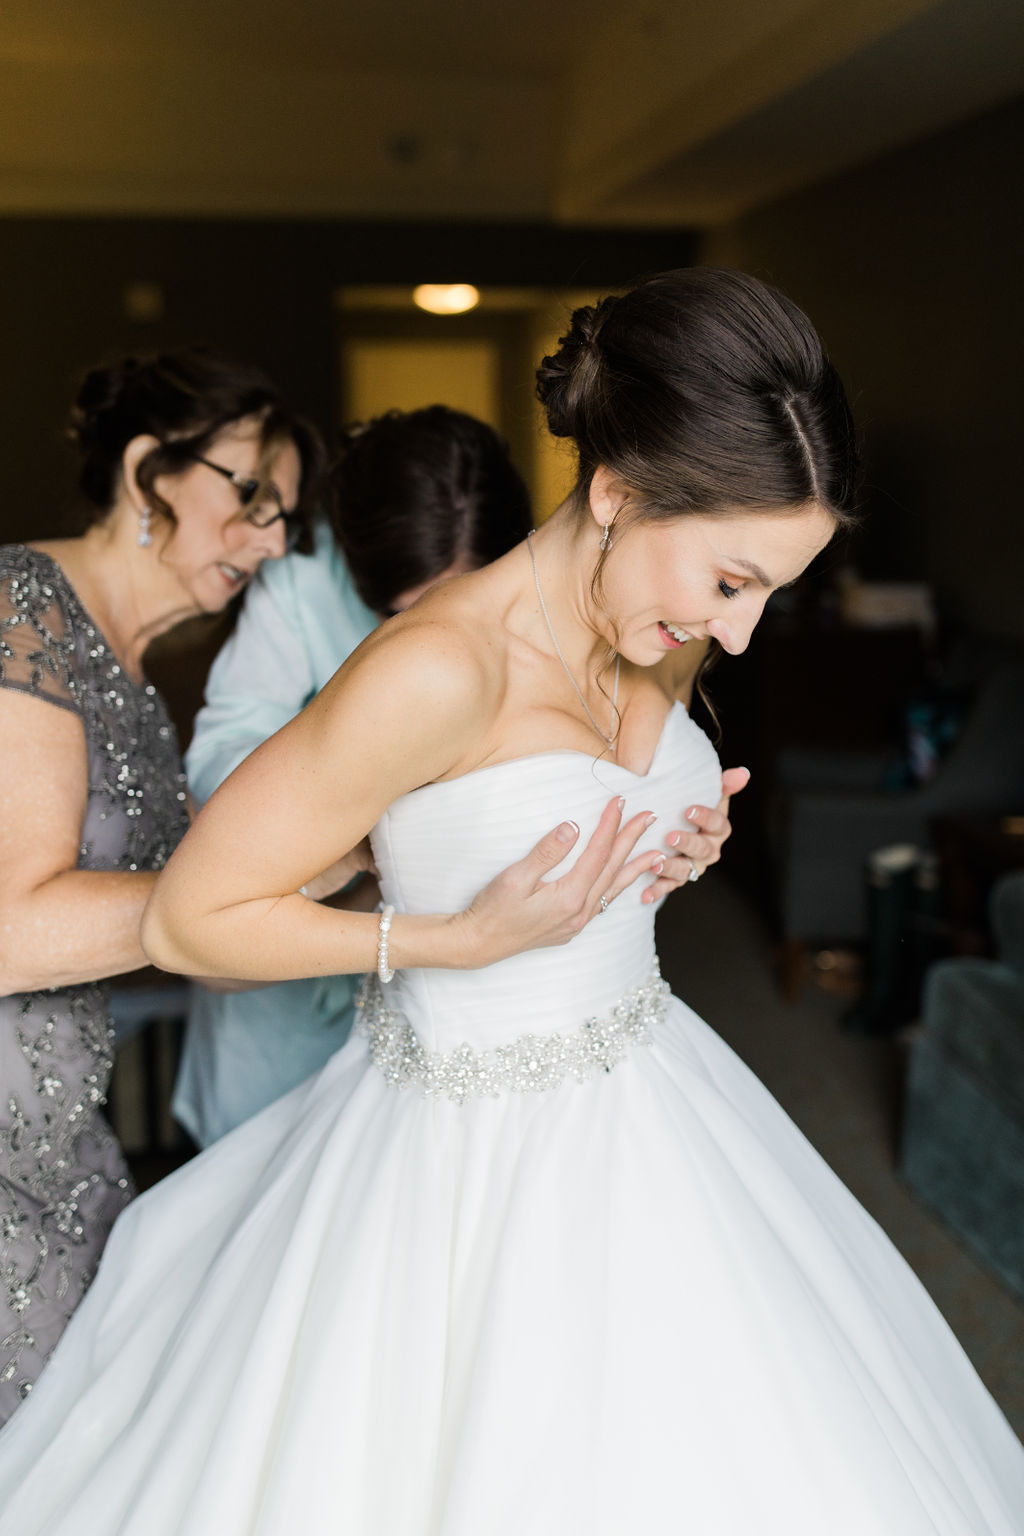 Katie&Brian_Wedding__JenHarveyPhotography-103.jpg